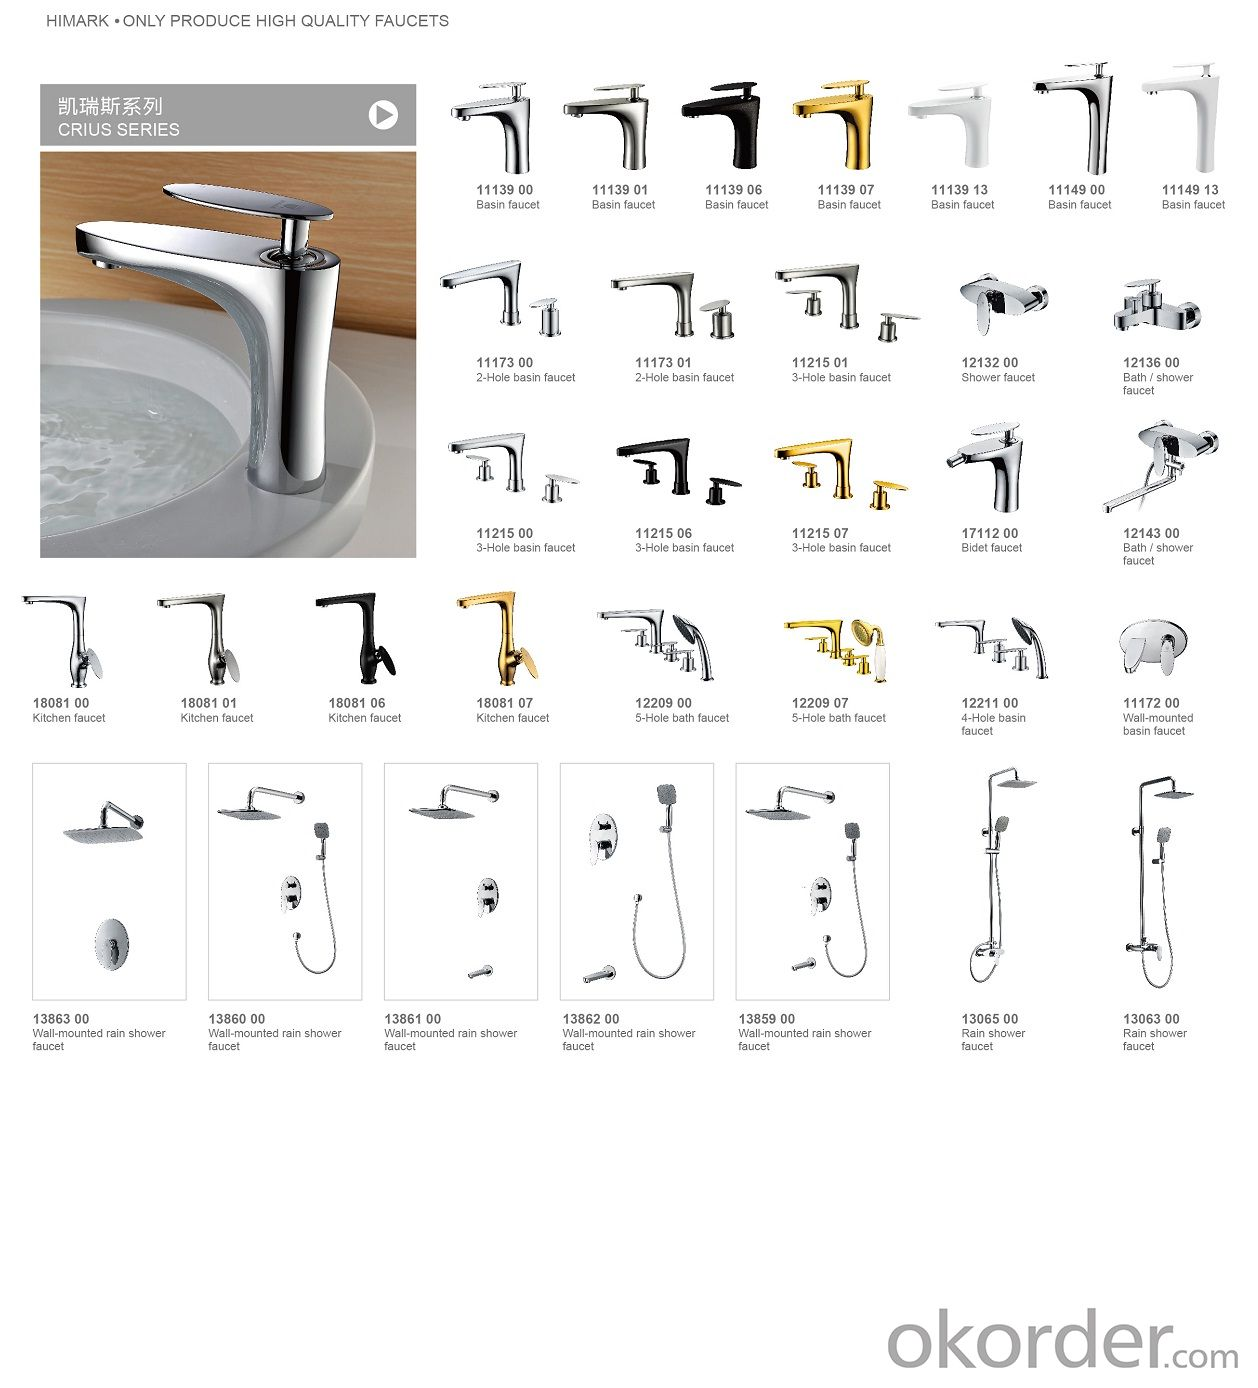 Faucet for bathroom basin faucet singel hand for bathroom